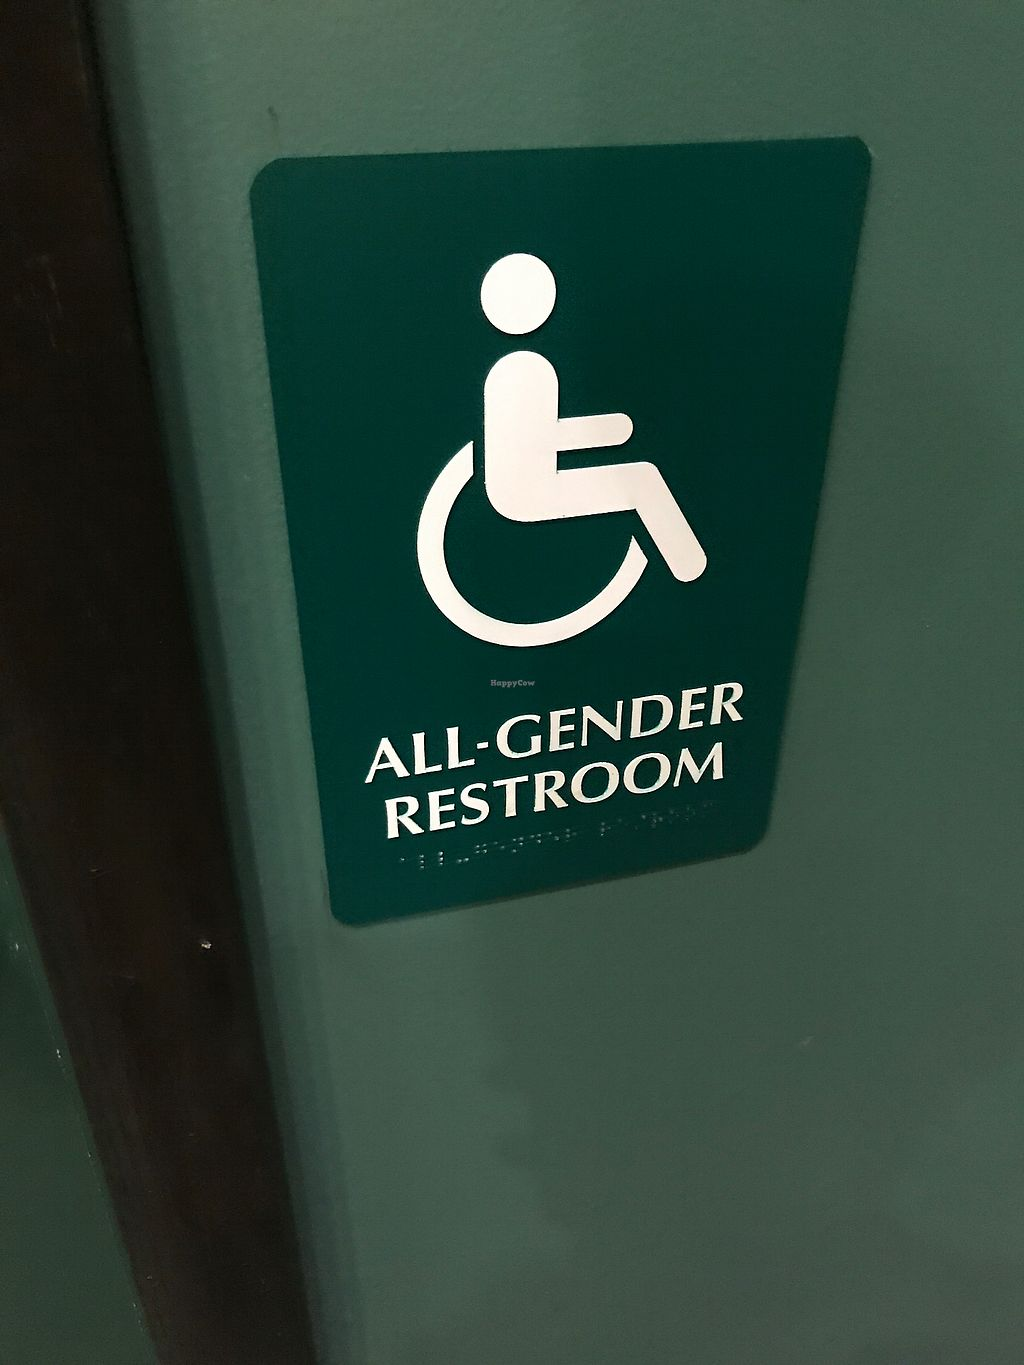 """Photo of Fair Grounds Coffeehouse  by <a href=""""/members/profile/farrahfrye"""">farrahfrye</a> <br/>non-binary gendered bathrooms! <br/> July 9, 2017  - <a href='/contact/abuse/image/9350/278339'>Report</a>"""